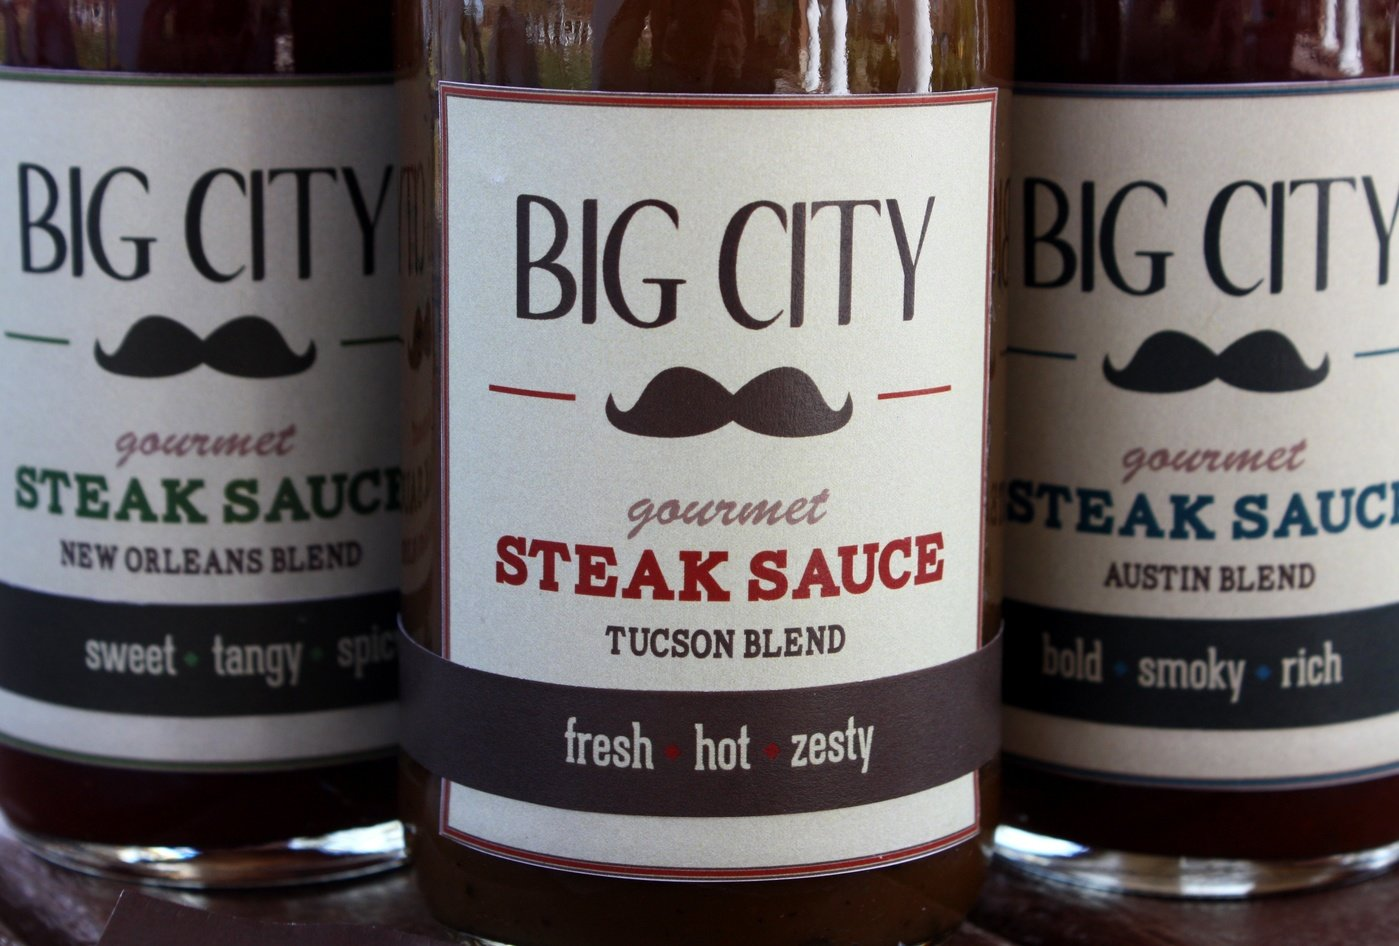 Big City Steak Sauce Packaging By Caitlin Murphy At Coroflot Com